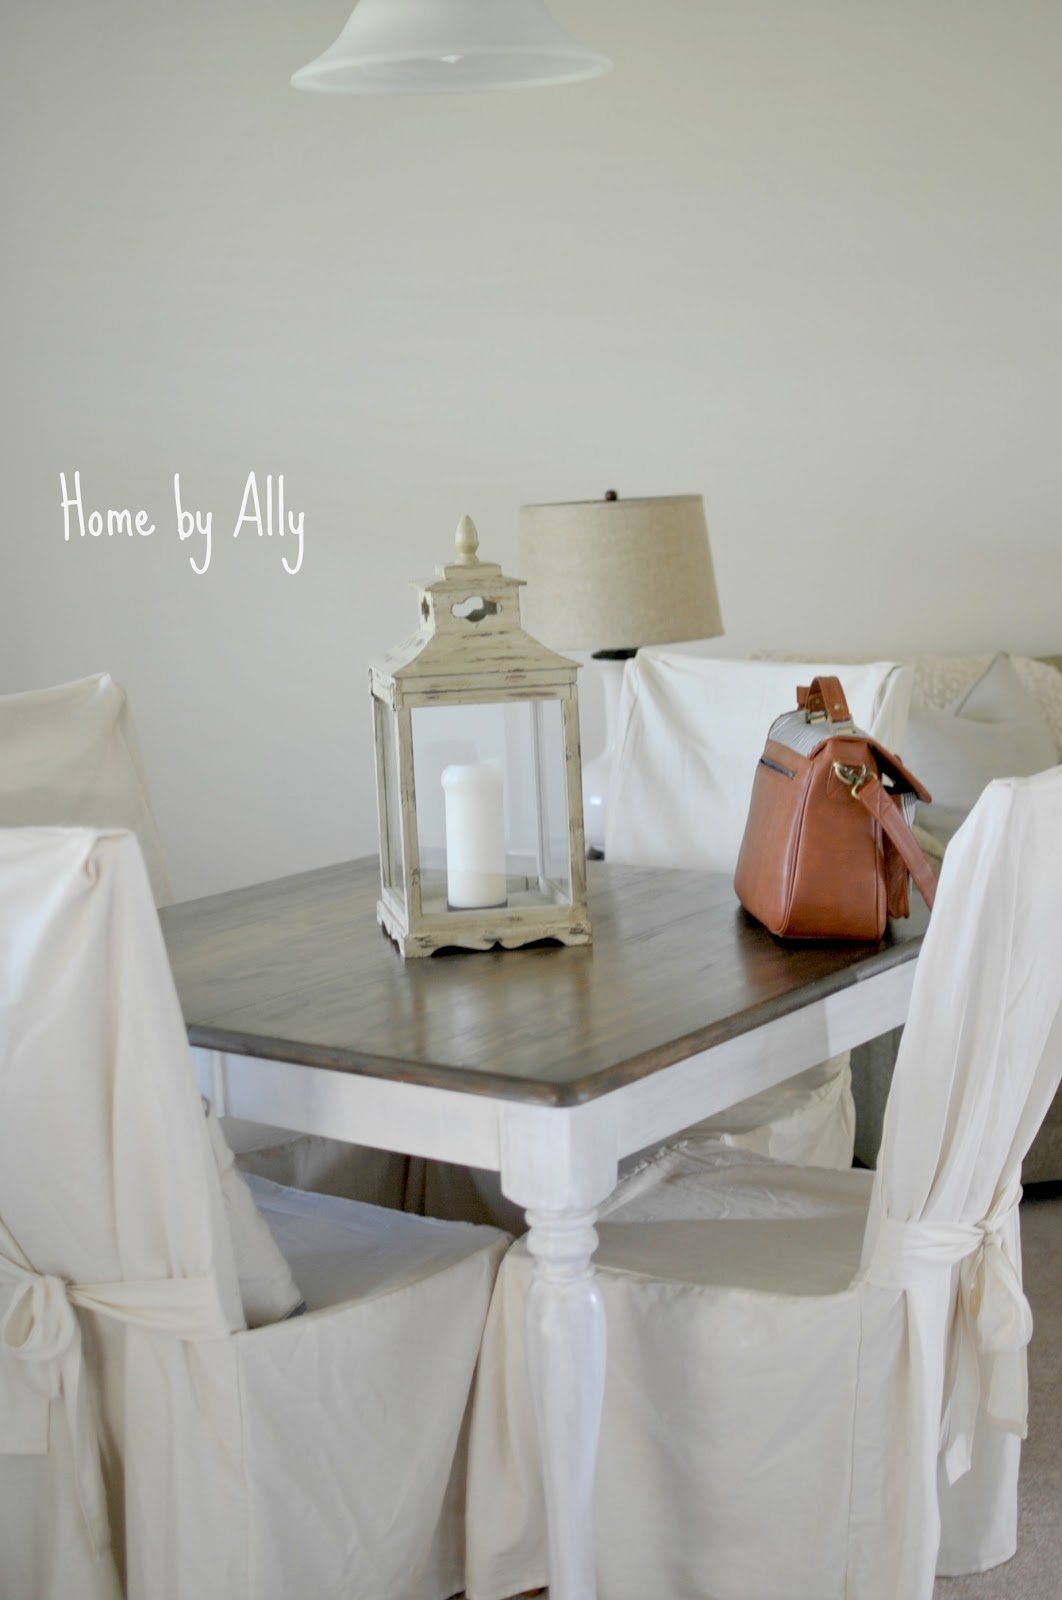 hey yall so redo kitchen table Home by Ally